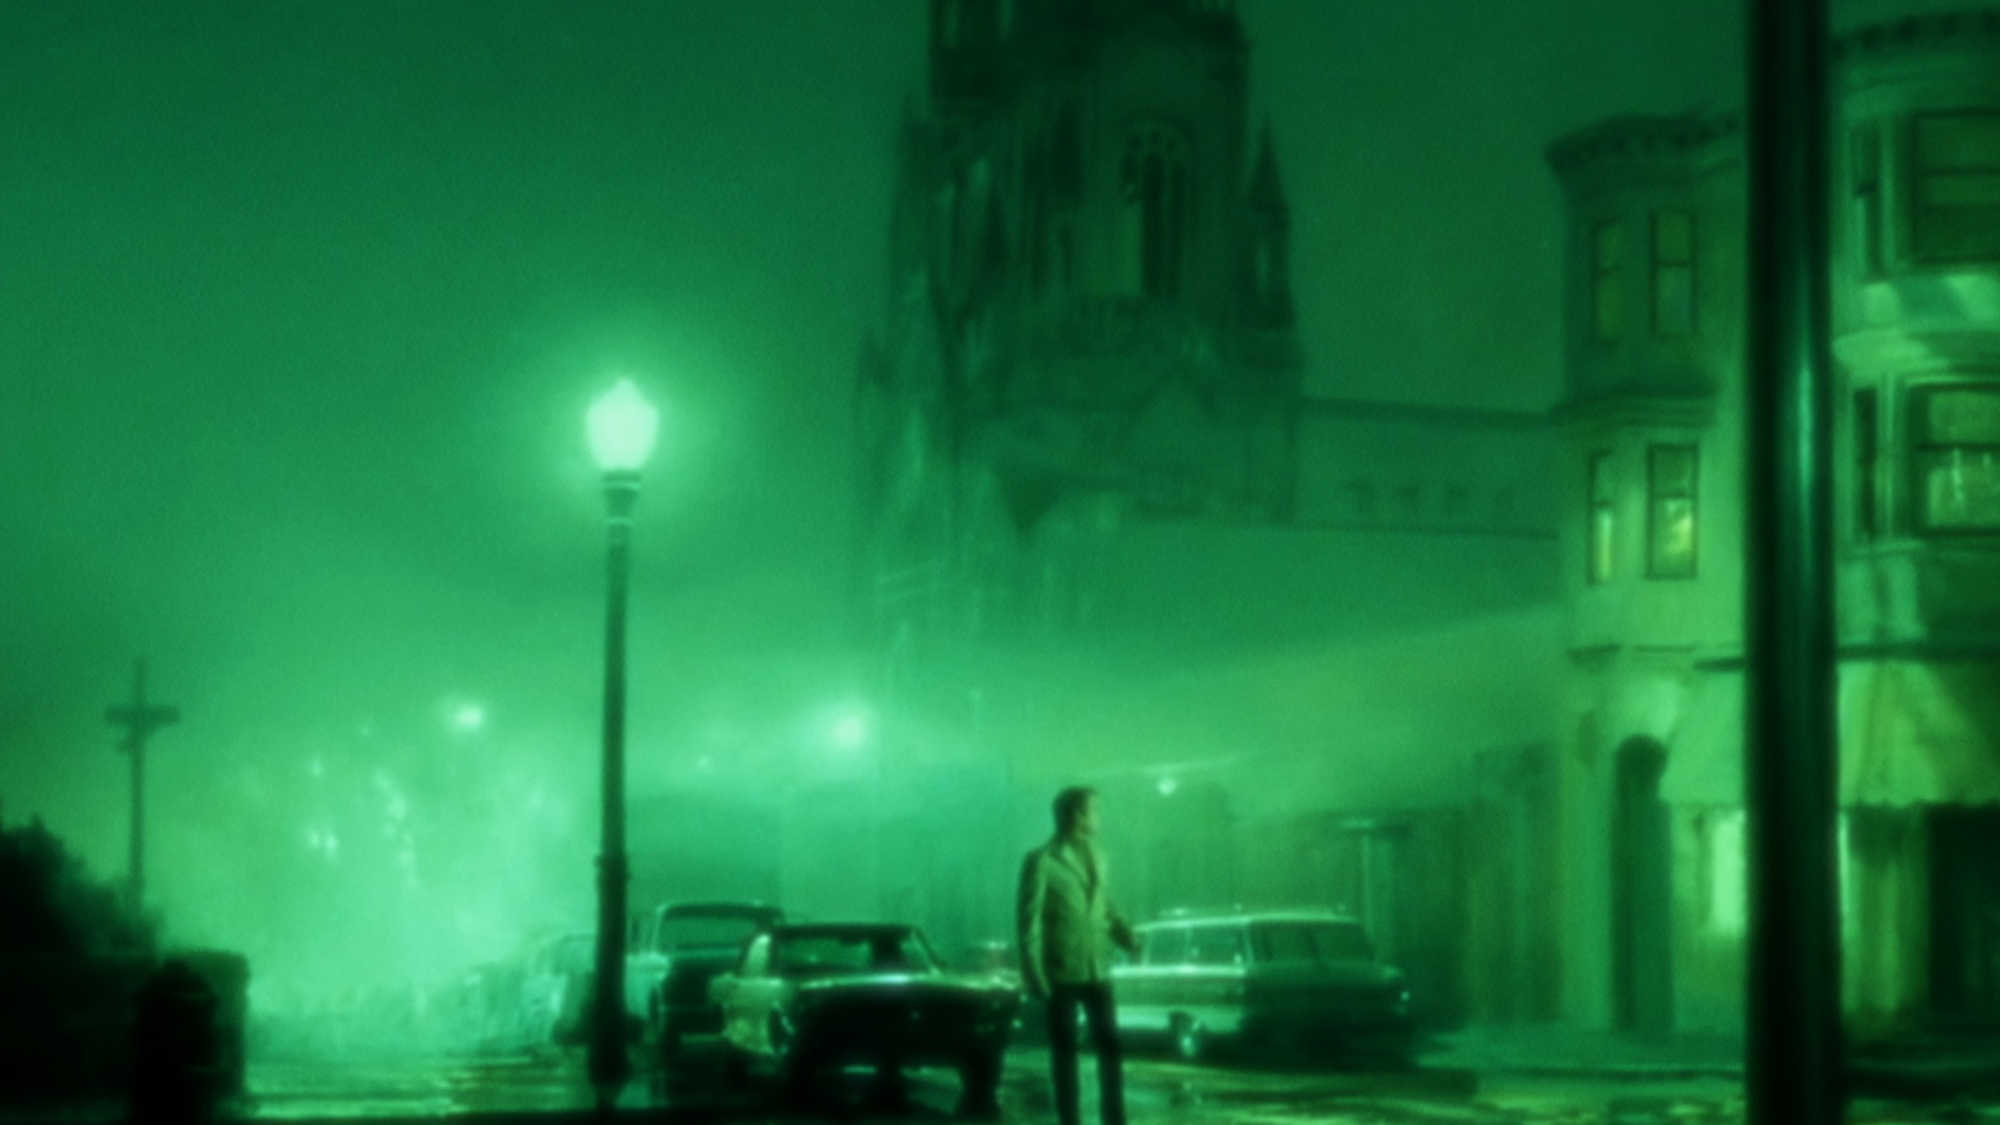 The Green Fog (image 1)